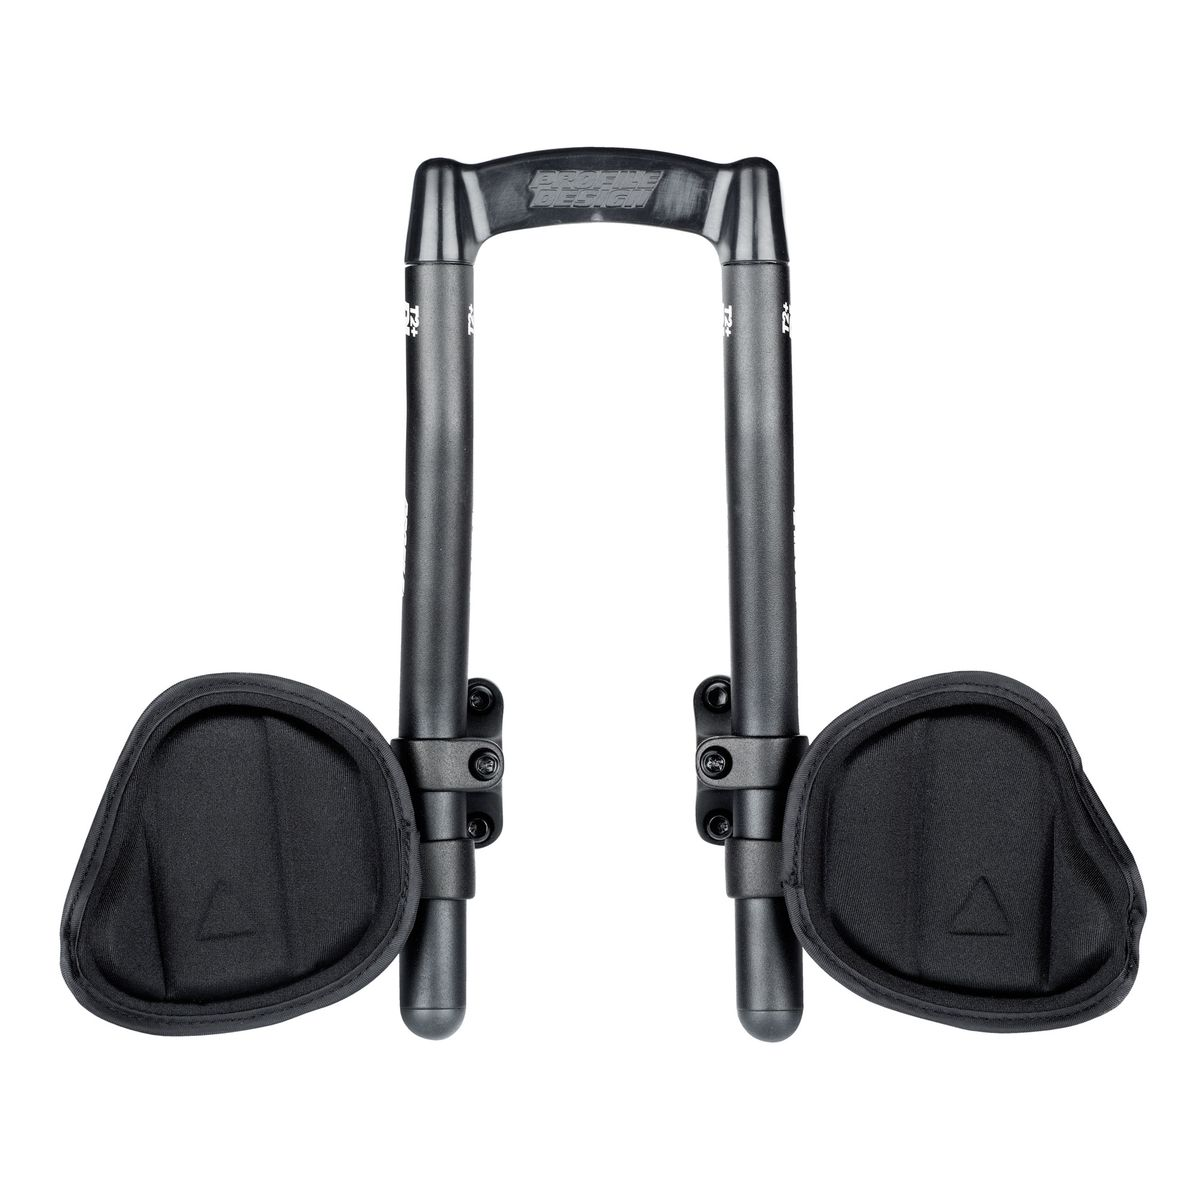 T2 Plus DL - Draft aerobar